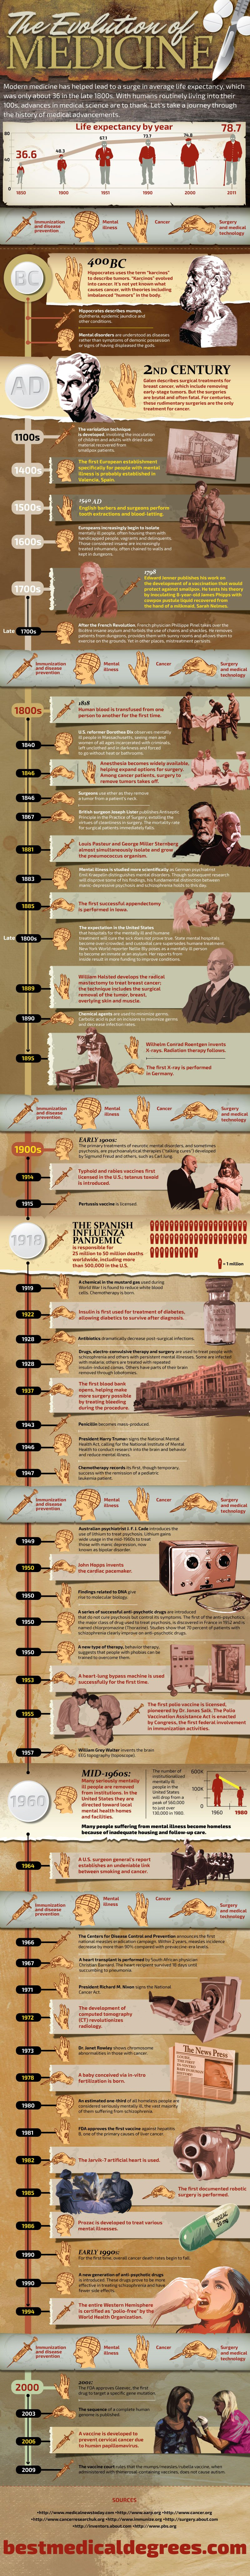 The Evolution of Medicine